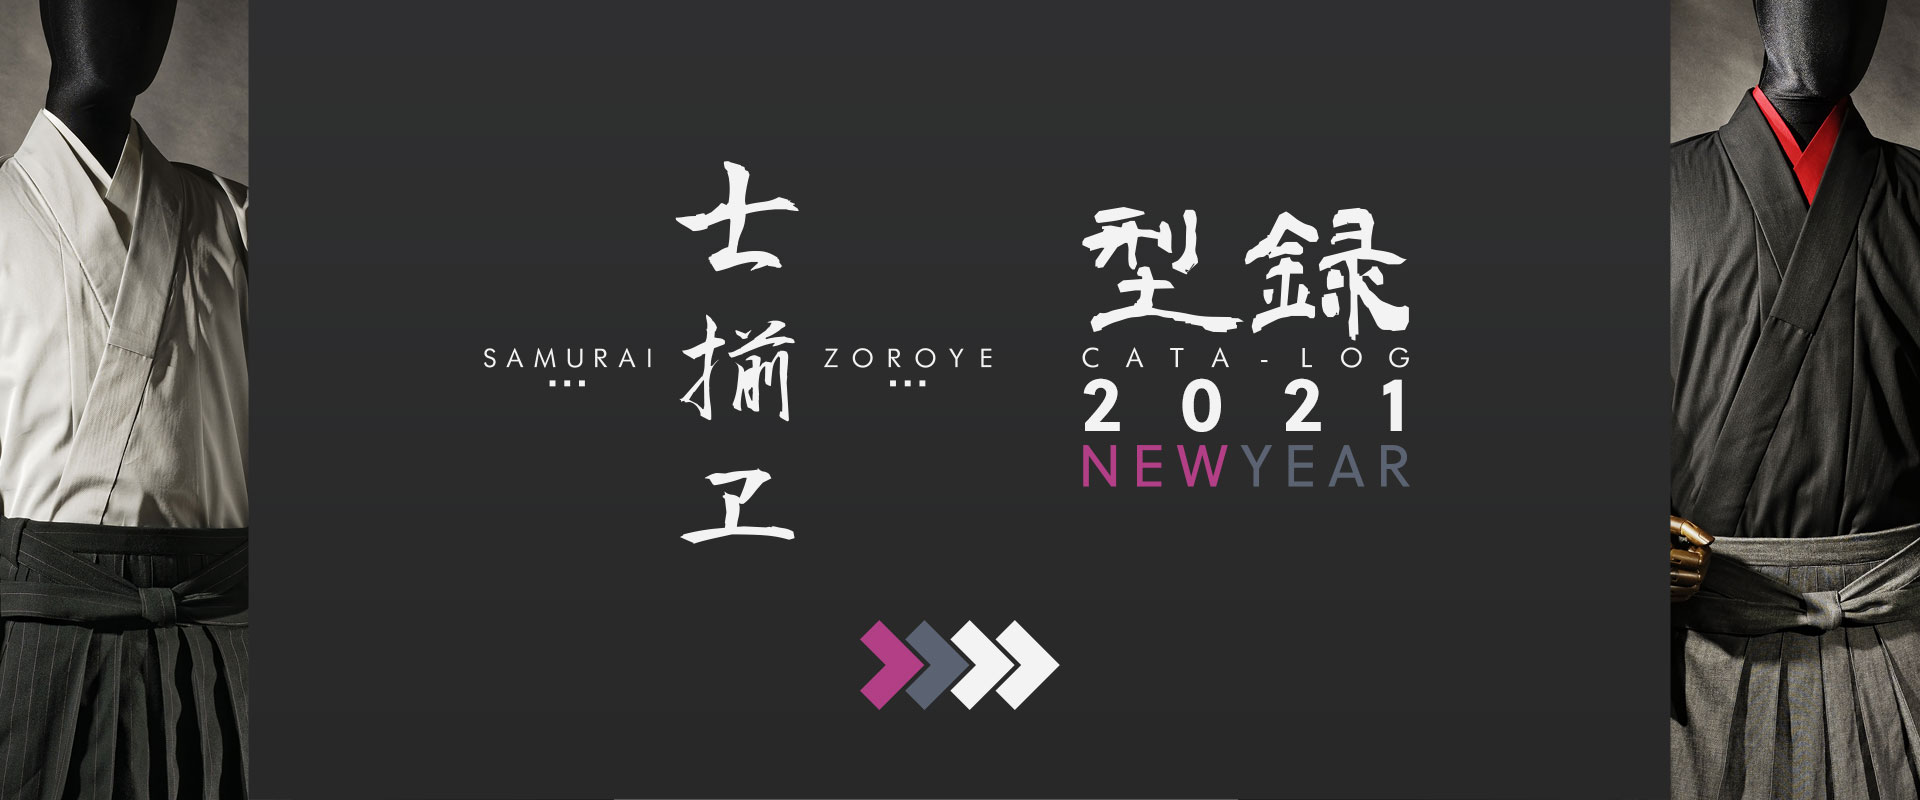 [PHOTO:SAMURAI-ZOROYE CATALOG 2021 NEW YEAR]